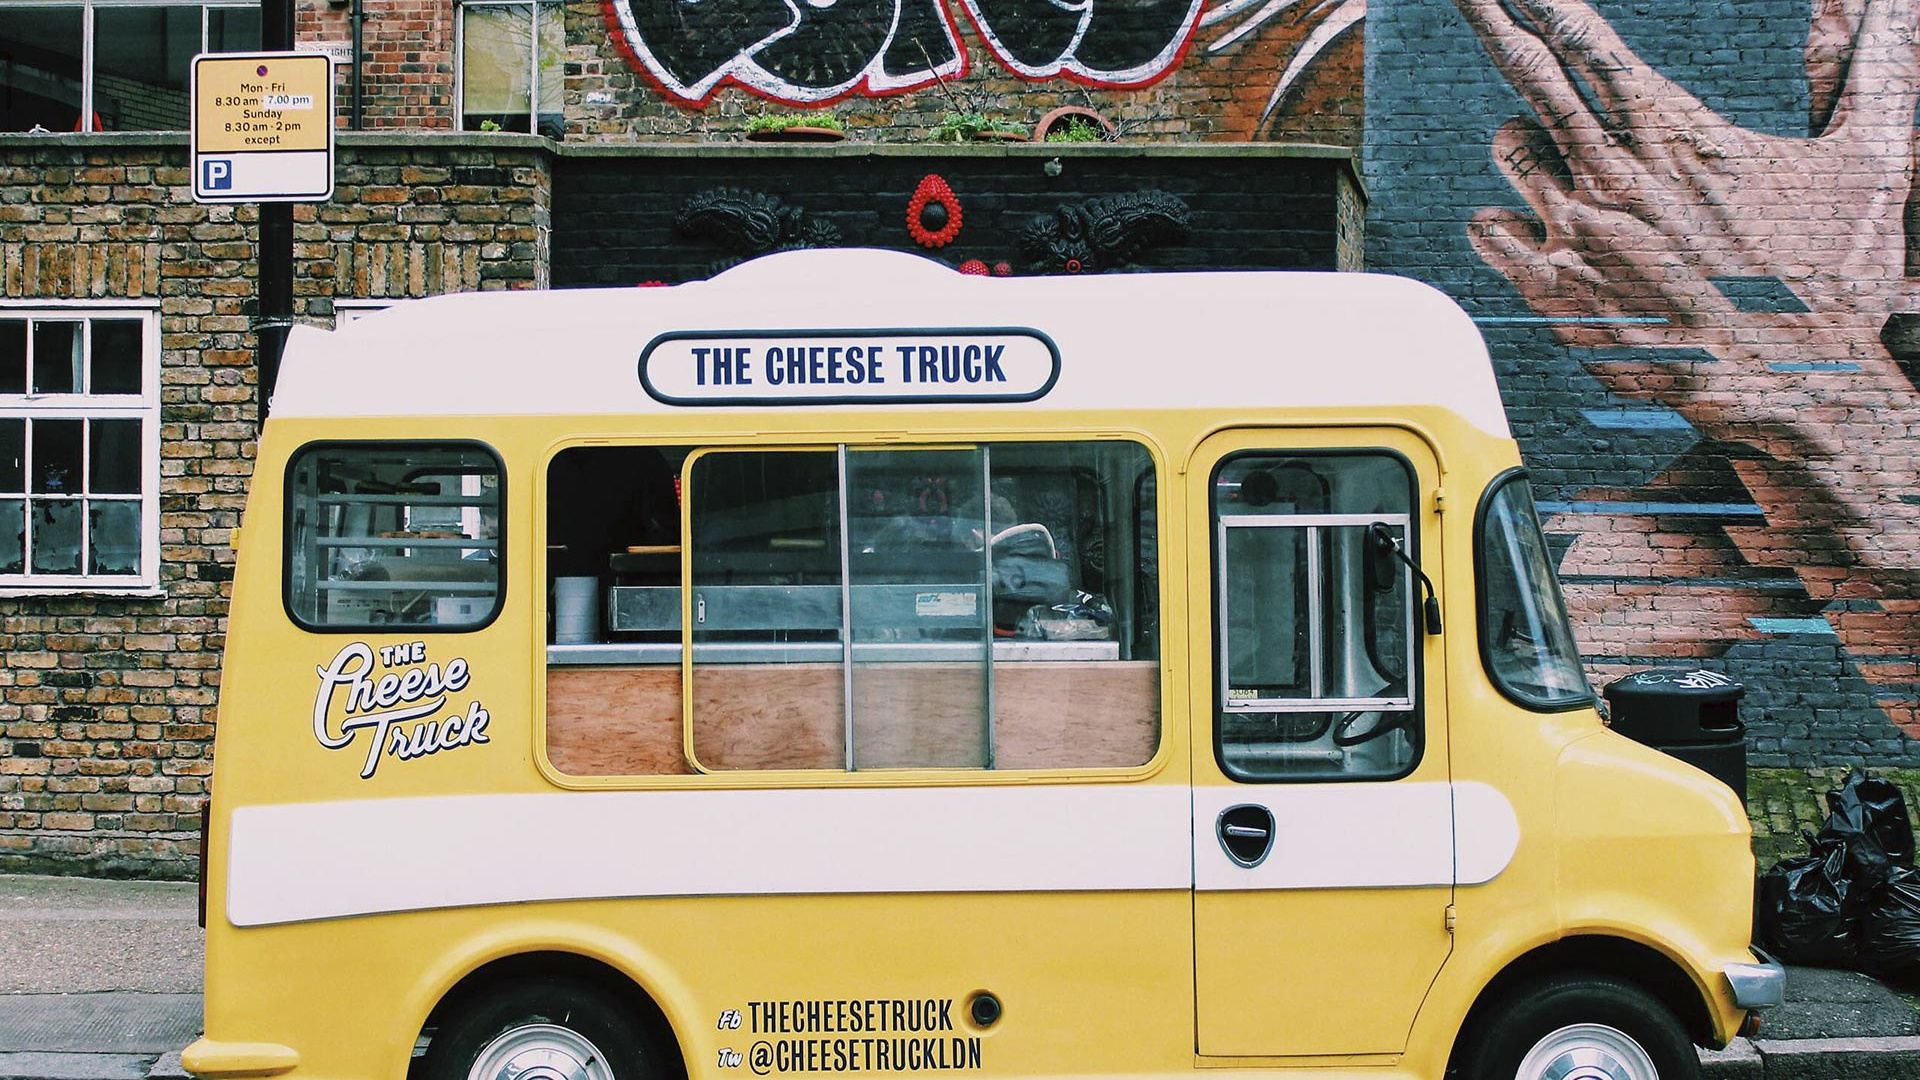 The Cheese Shed started out as a travelling street food truck